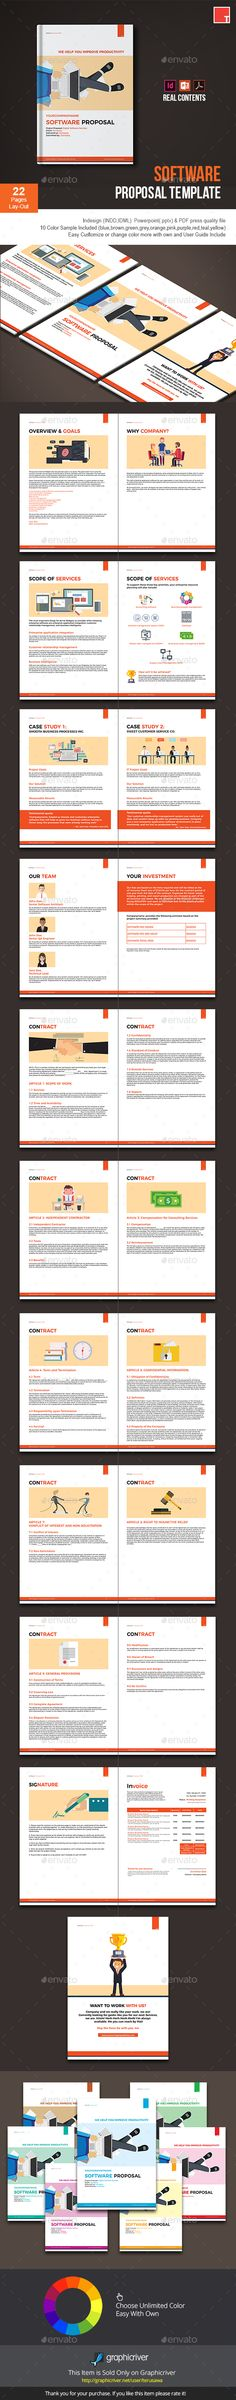 Free Business Invoice Template by Heroes On Parade nAyggXB3 - free business invoices